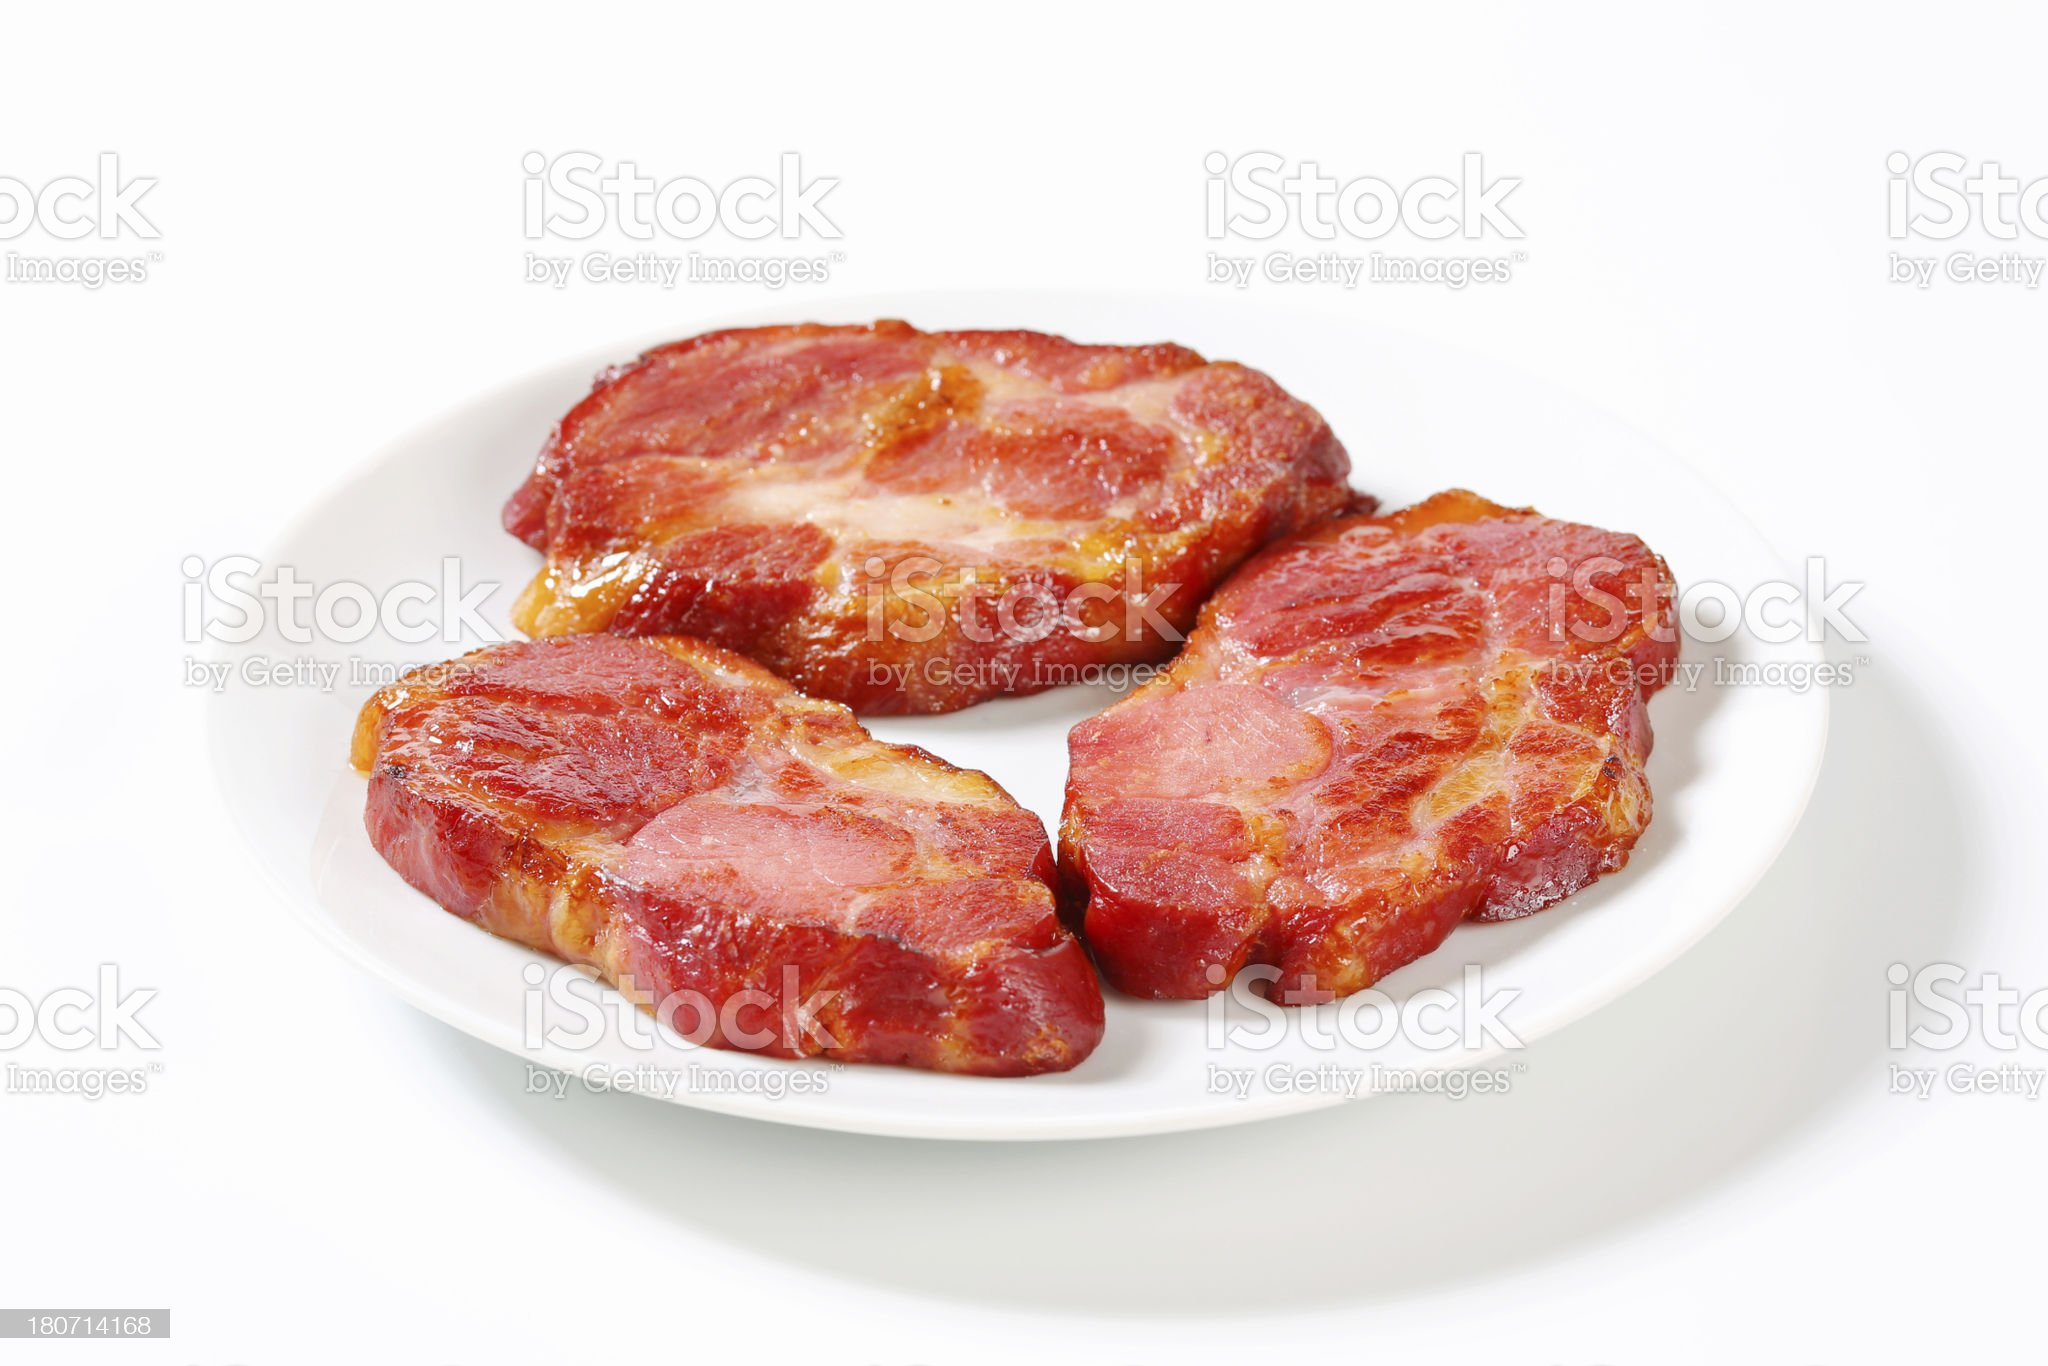 Three slices of grilled pork neck on a plate royalty-free stock photo